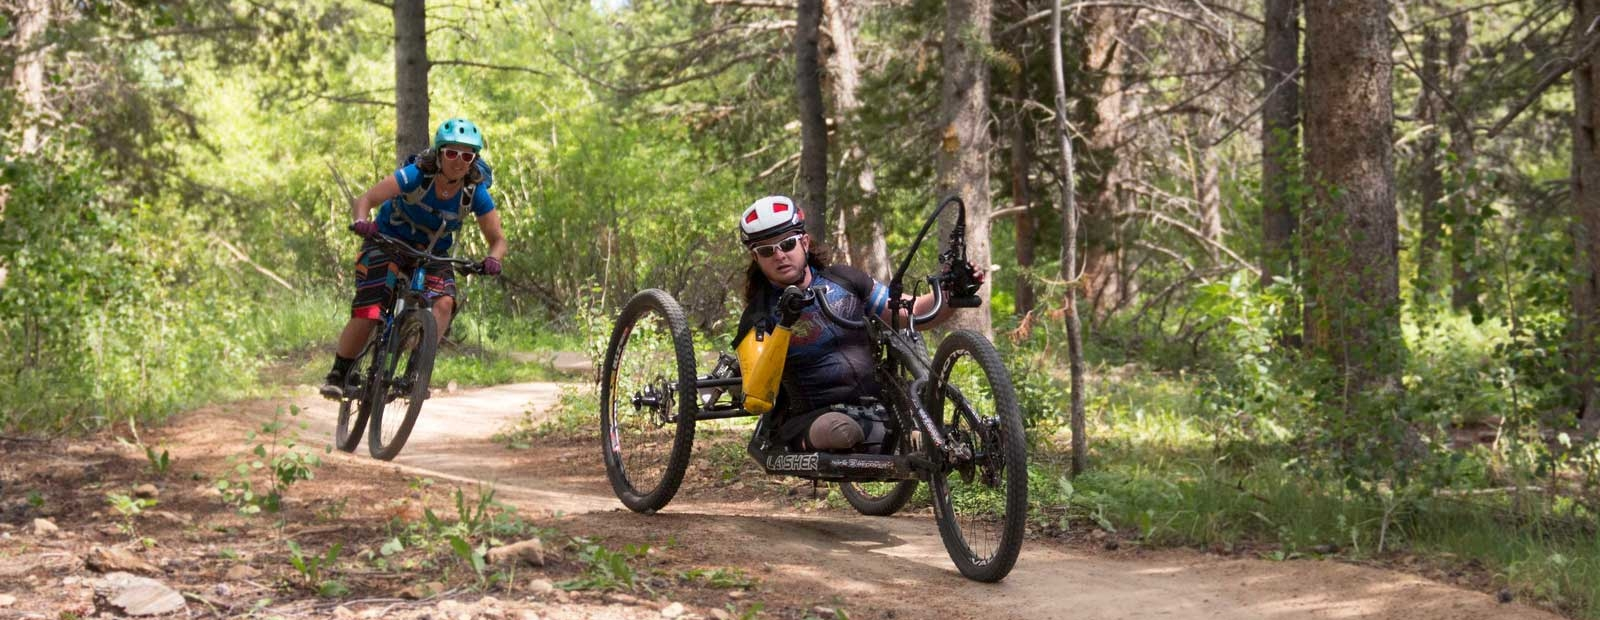 Man racing on offroad hand cycle